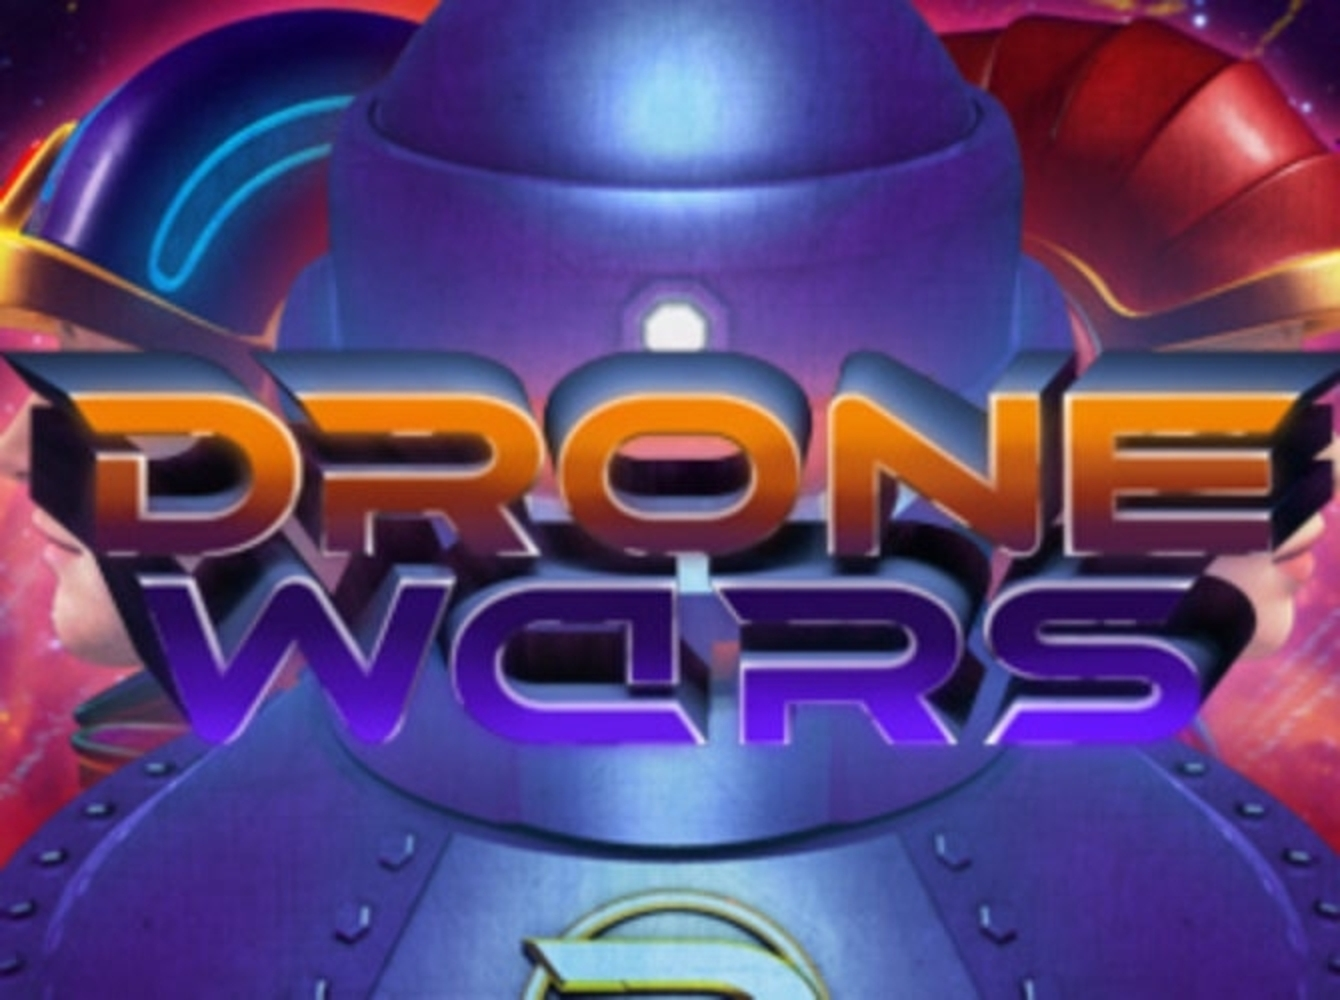 The Drone Wars Online Slot Demo Game by Microgaming